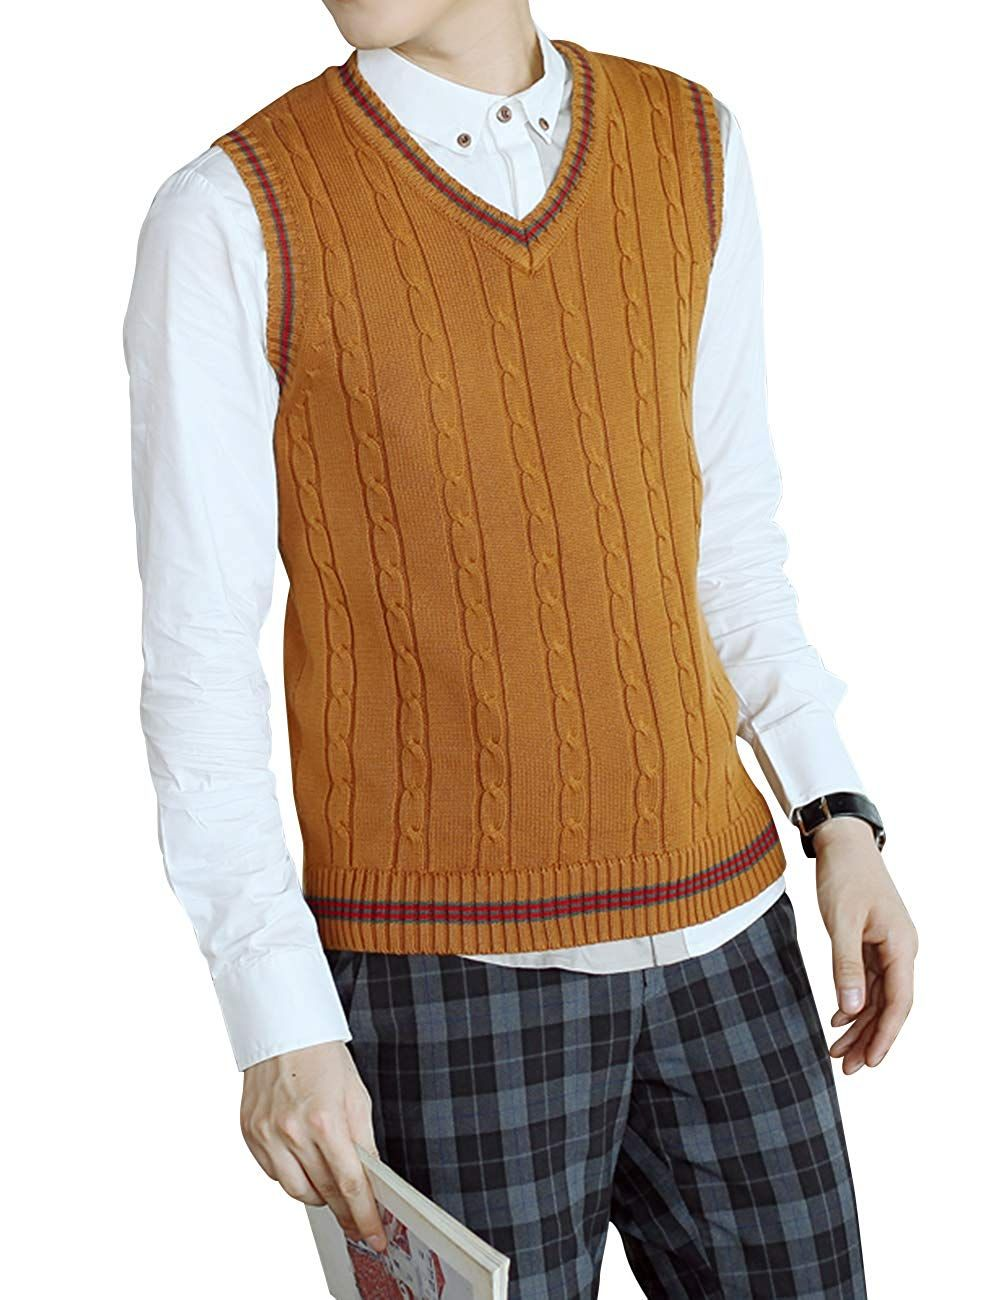 1920s Style Men S Vests Pullover Vests Waistcoats Sweater Vest Mens Cotton Cable Knit Sweater Sweater Vest Outfit